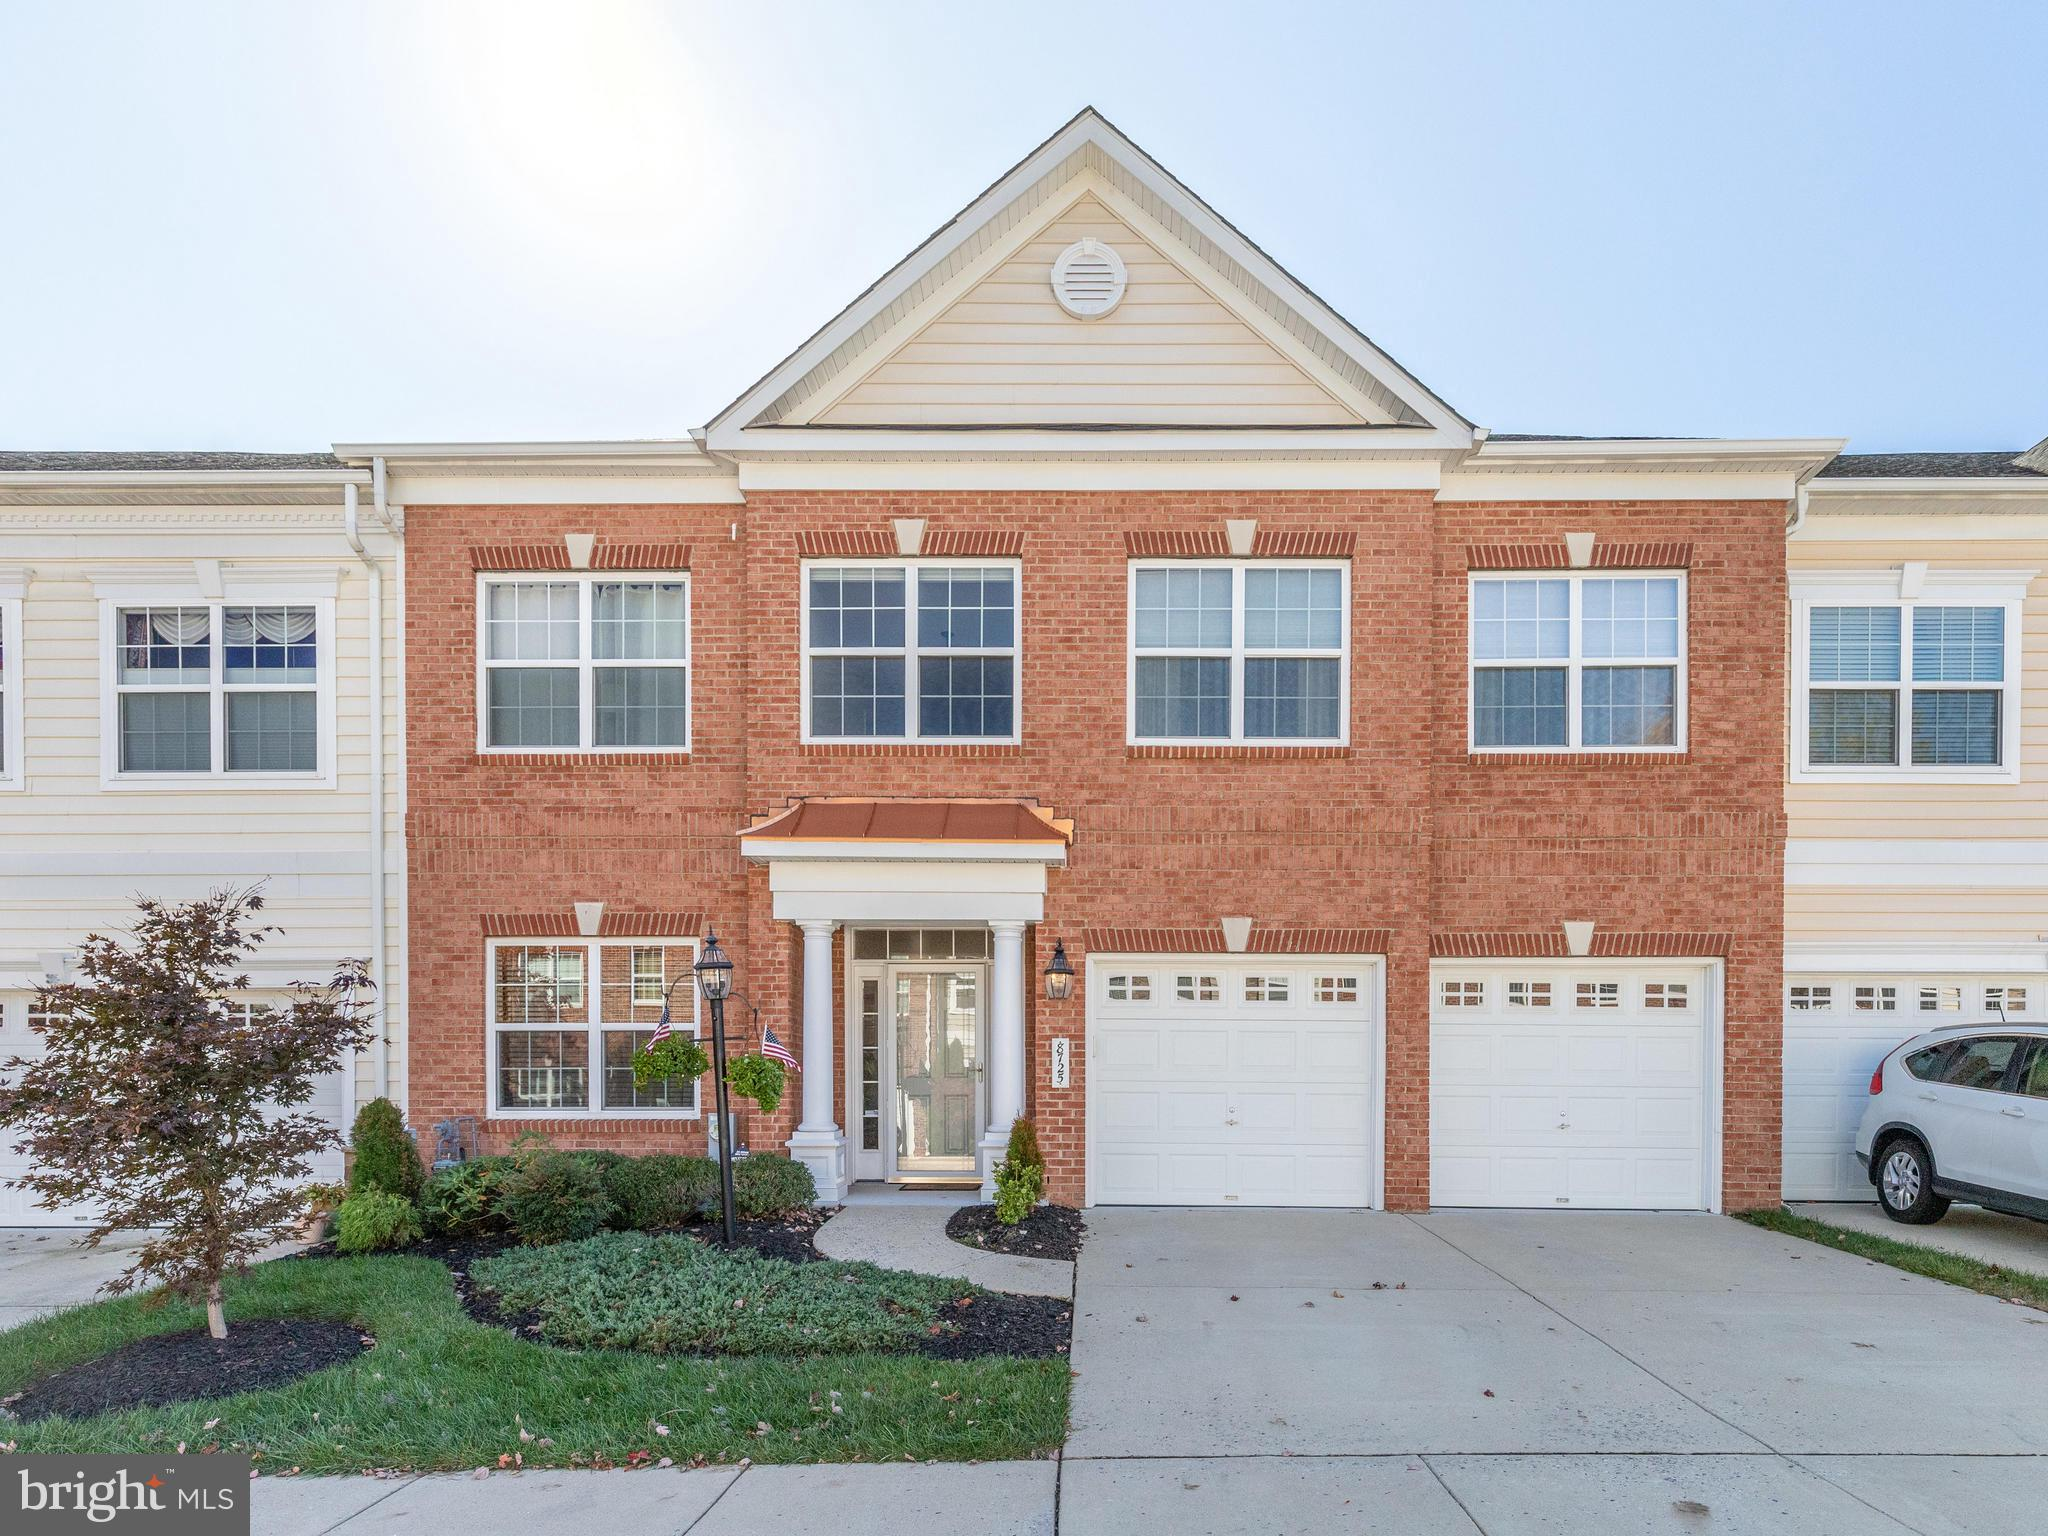 8725 SAGE BRUSH WAY 61, COLUMBIA, MD 21045